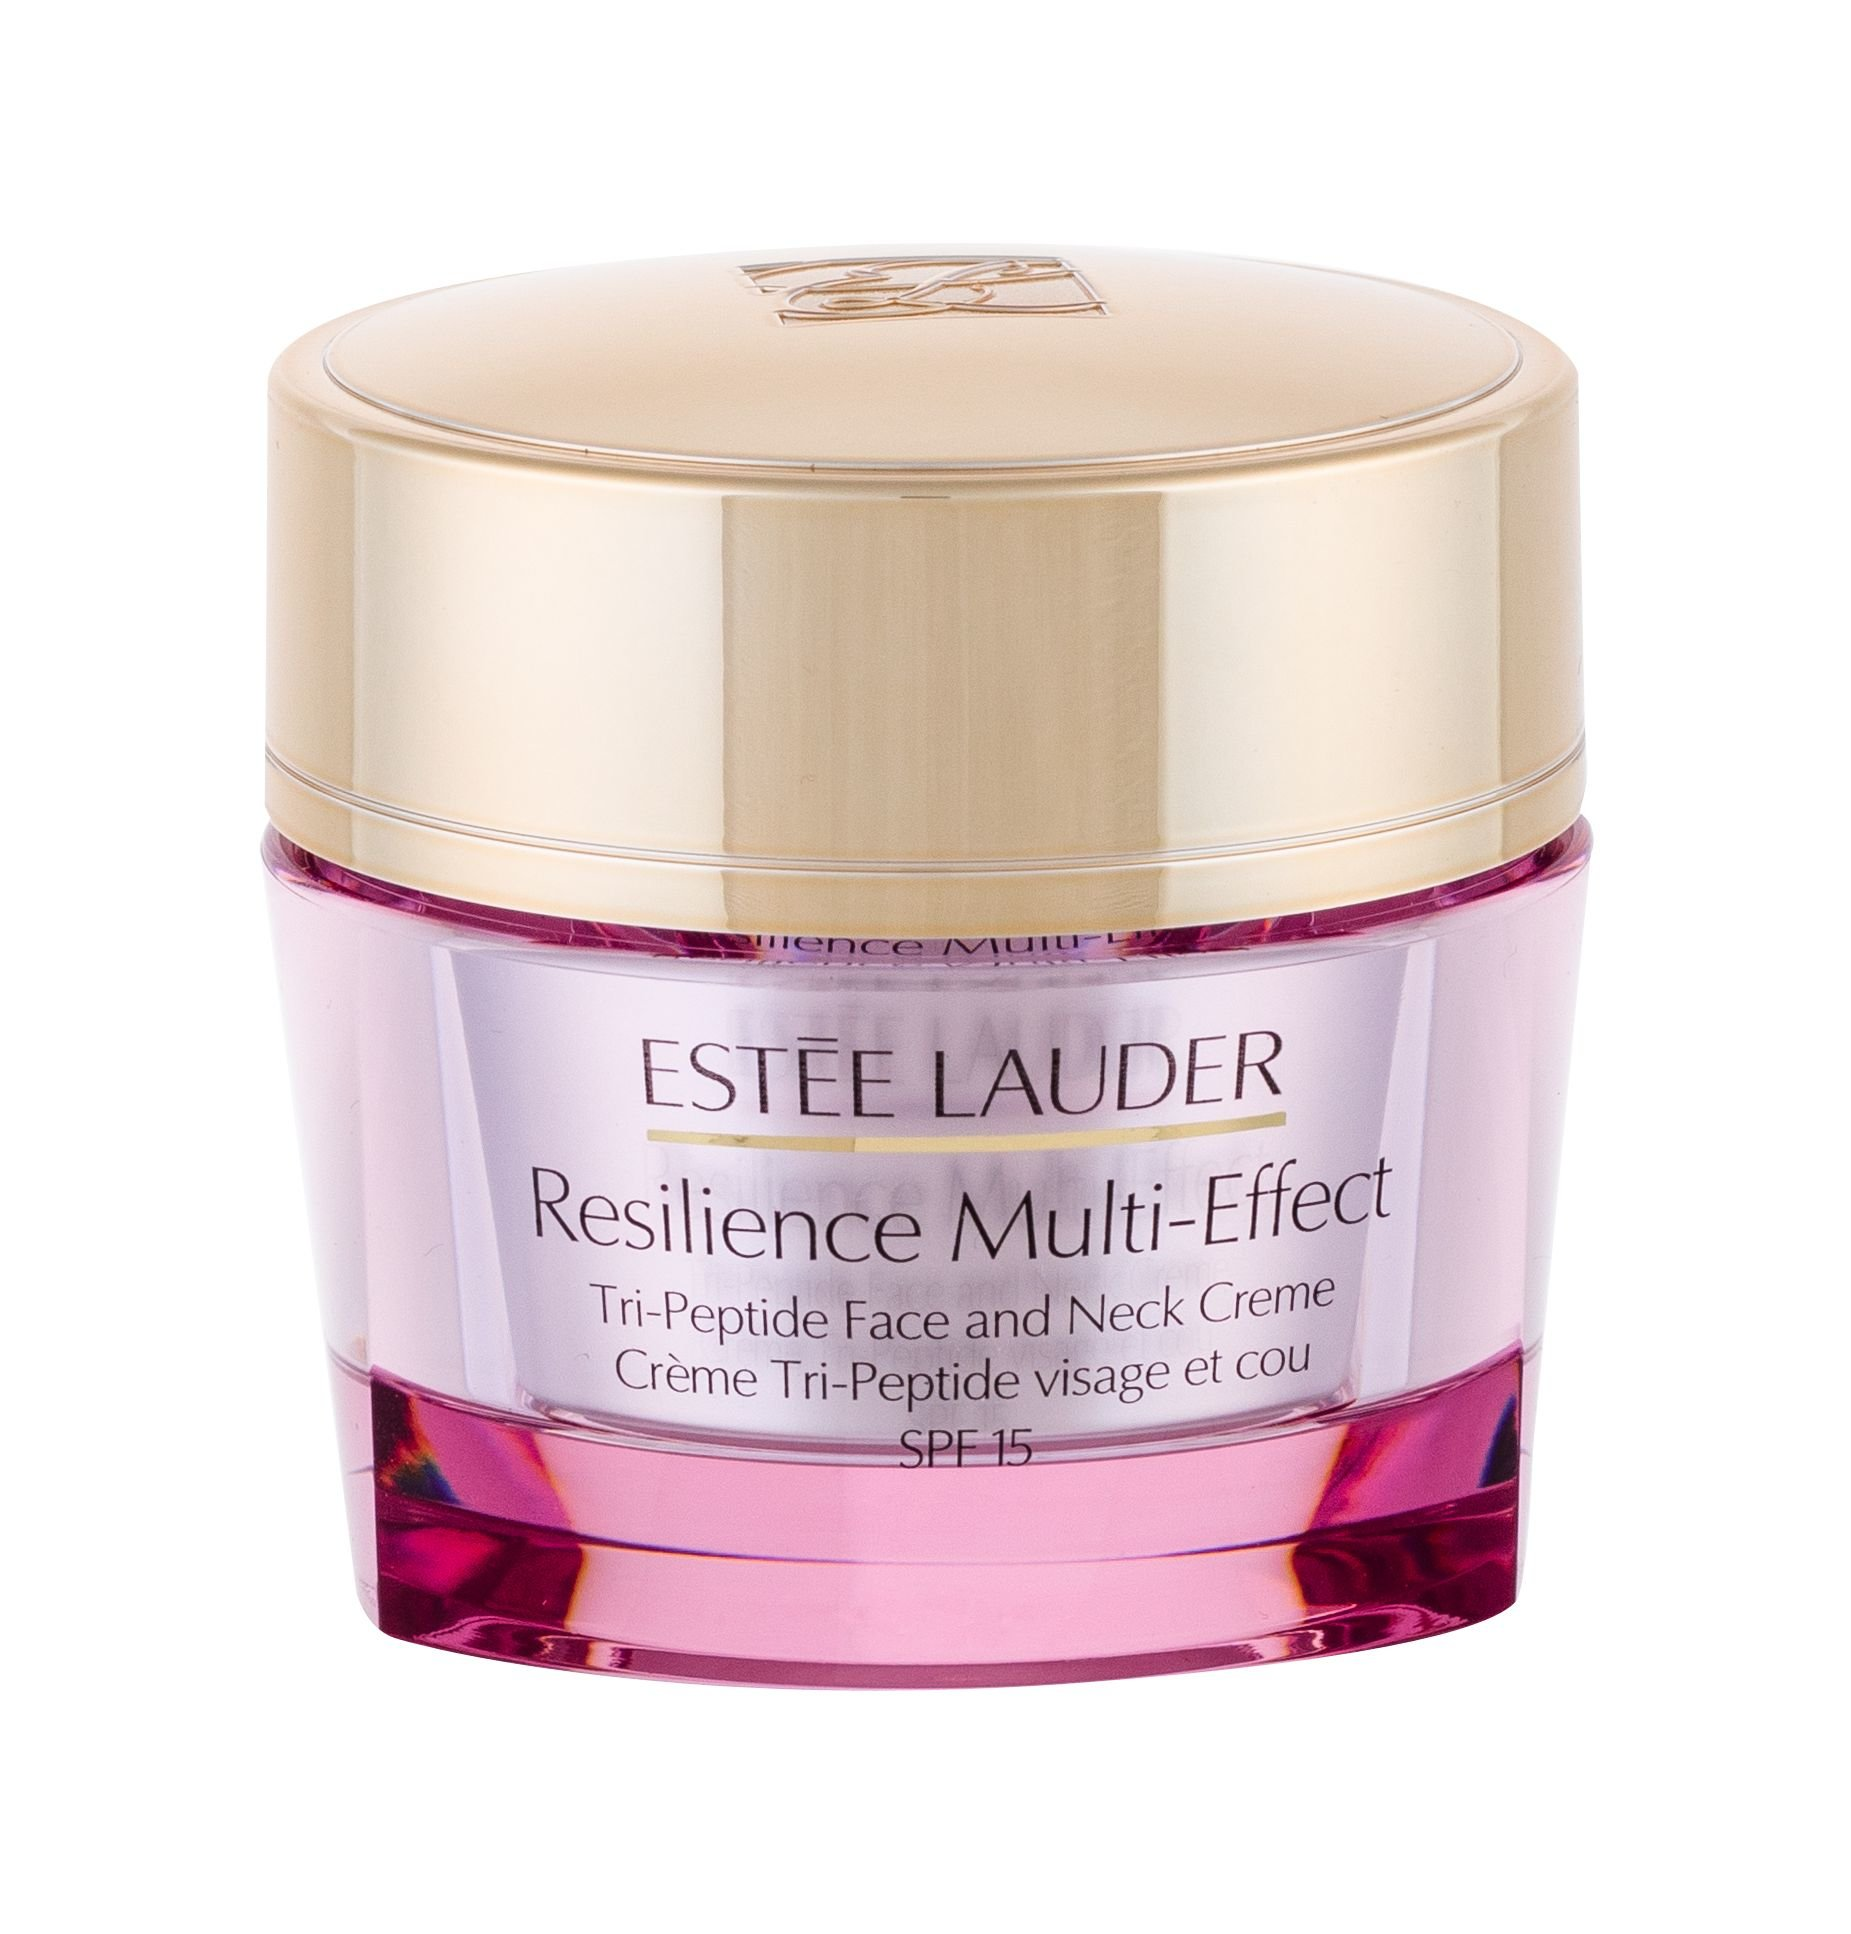 Estée Lauder Resilience Multi-Effect Day Cream 50ml